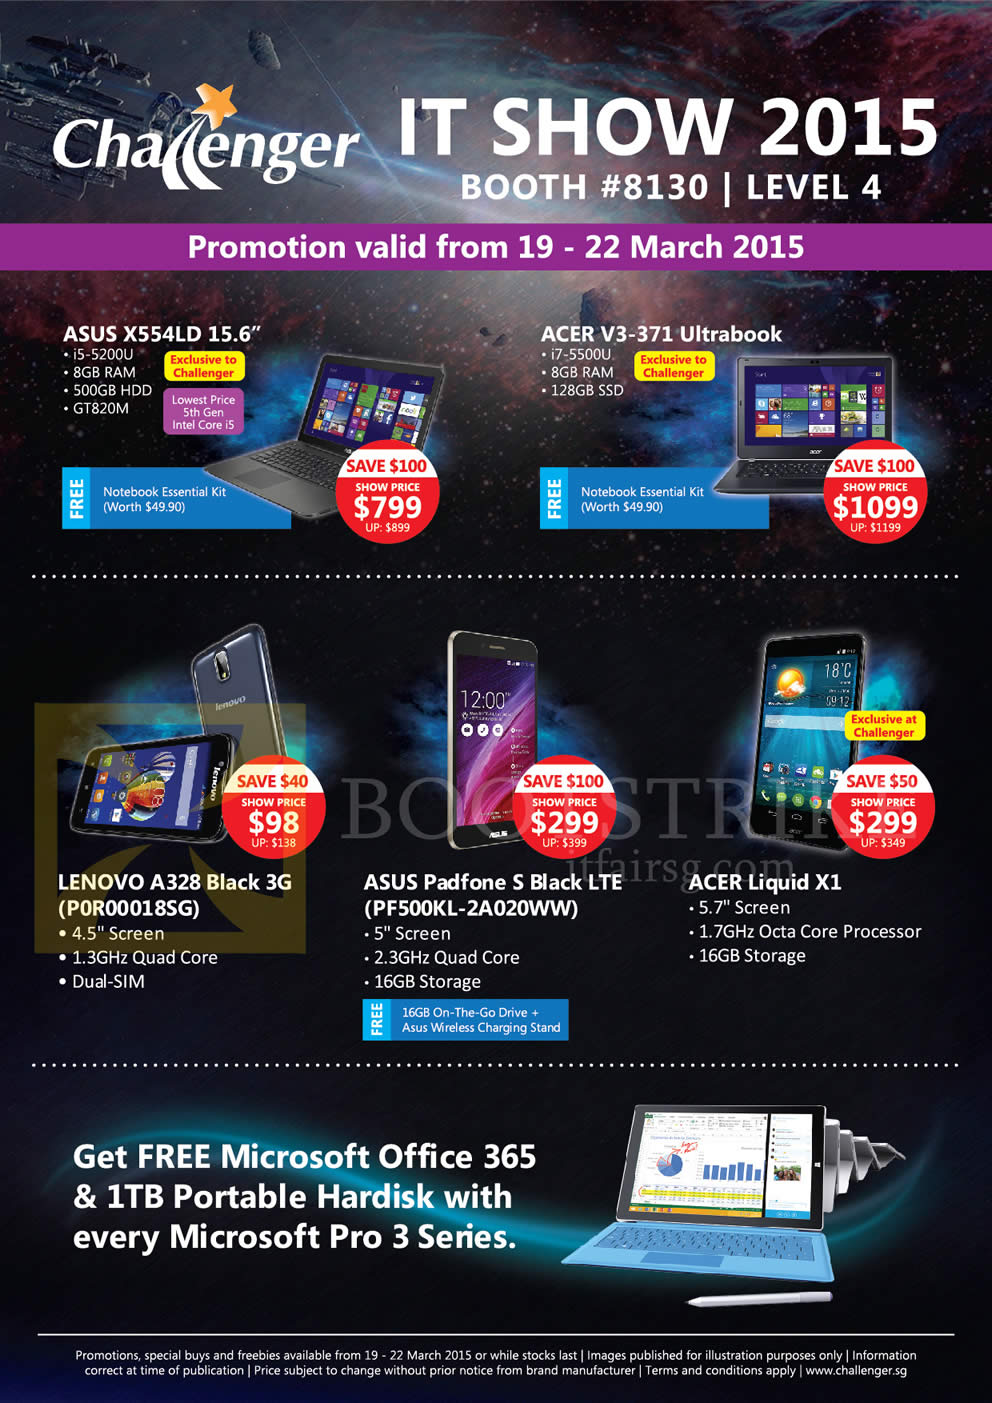 IT SHOW 2015 price list image brochure of Challenger Notebooks, Mobile Phones Asus, Acer, Lenovo, X554LD, Padfone S, V3-371, Liquid X1, A328 Black